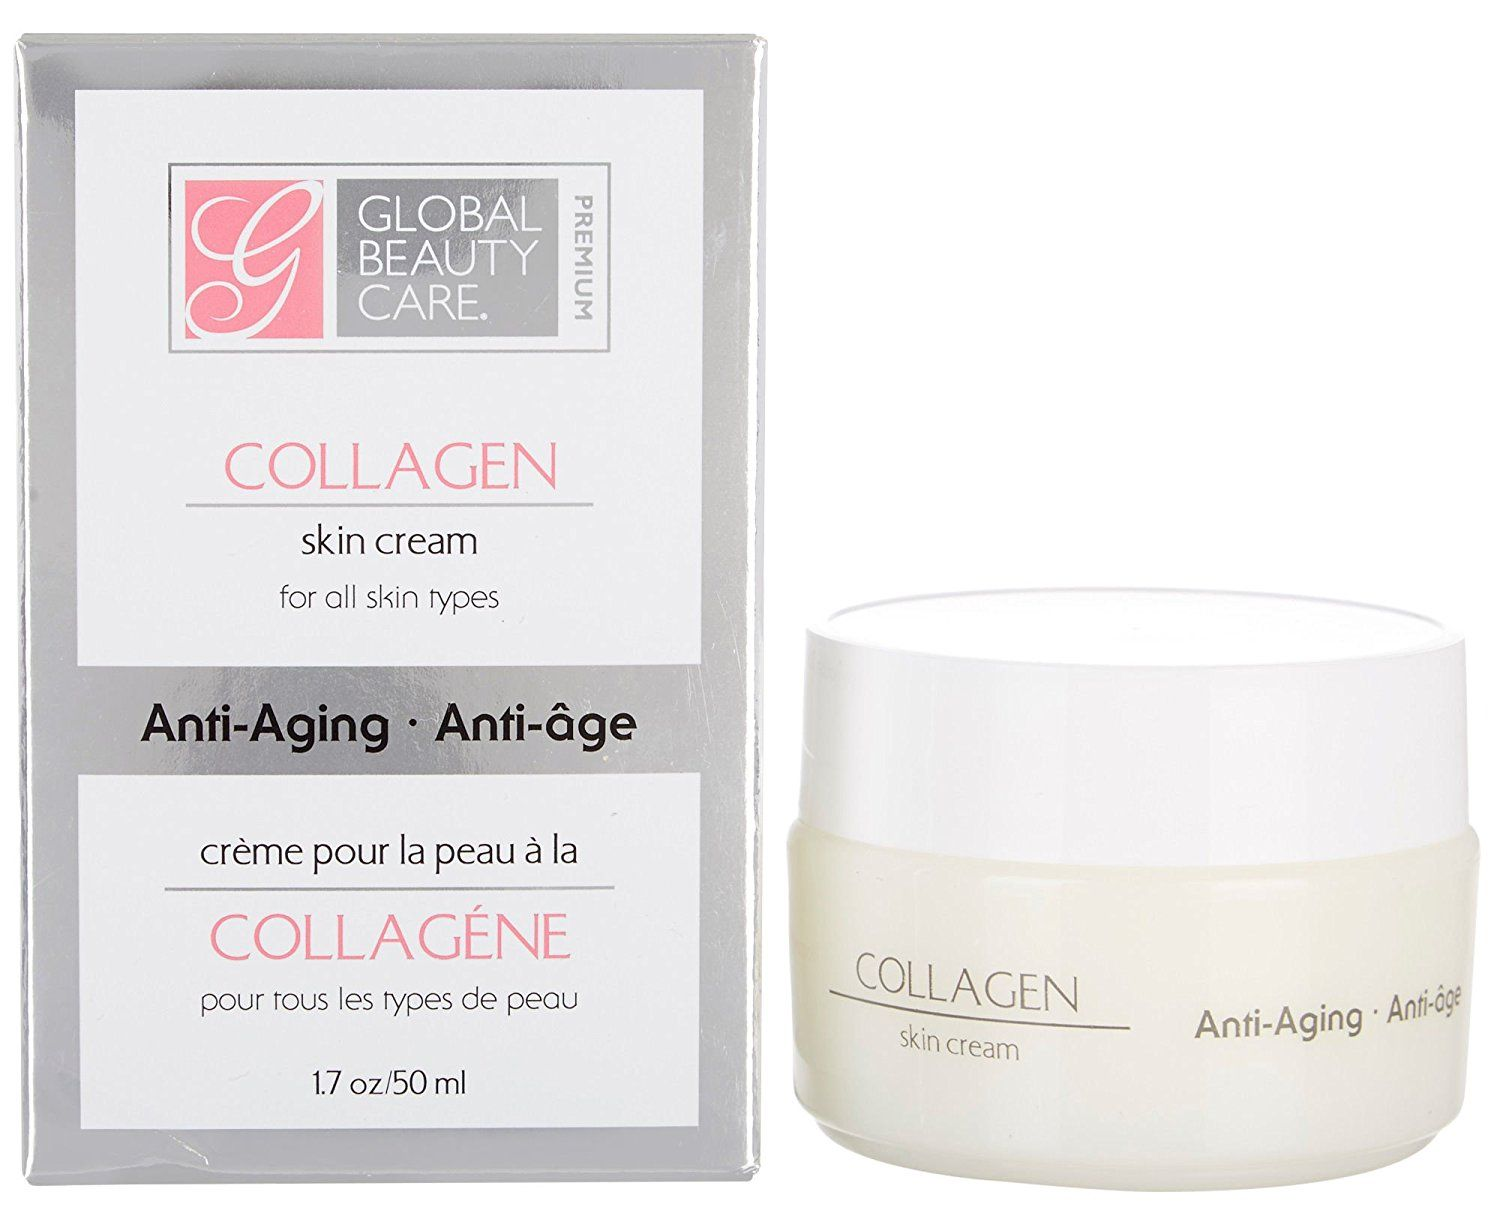 Global Beauty Care Premium Collagen Skin Cream 1 7 Oz Cream This Is An Amazon Affiliate Link Click Image To R Skin Cream Skin Cream Anti Aging Beauty Care